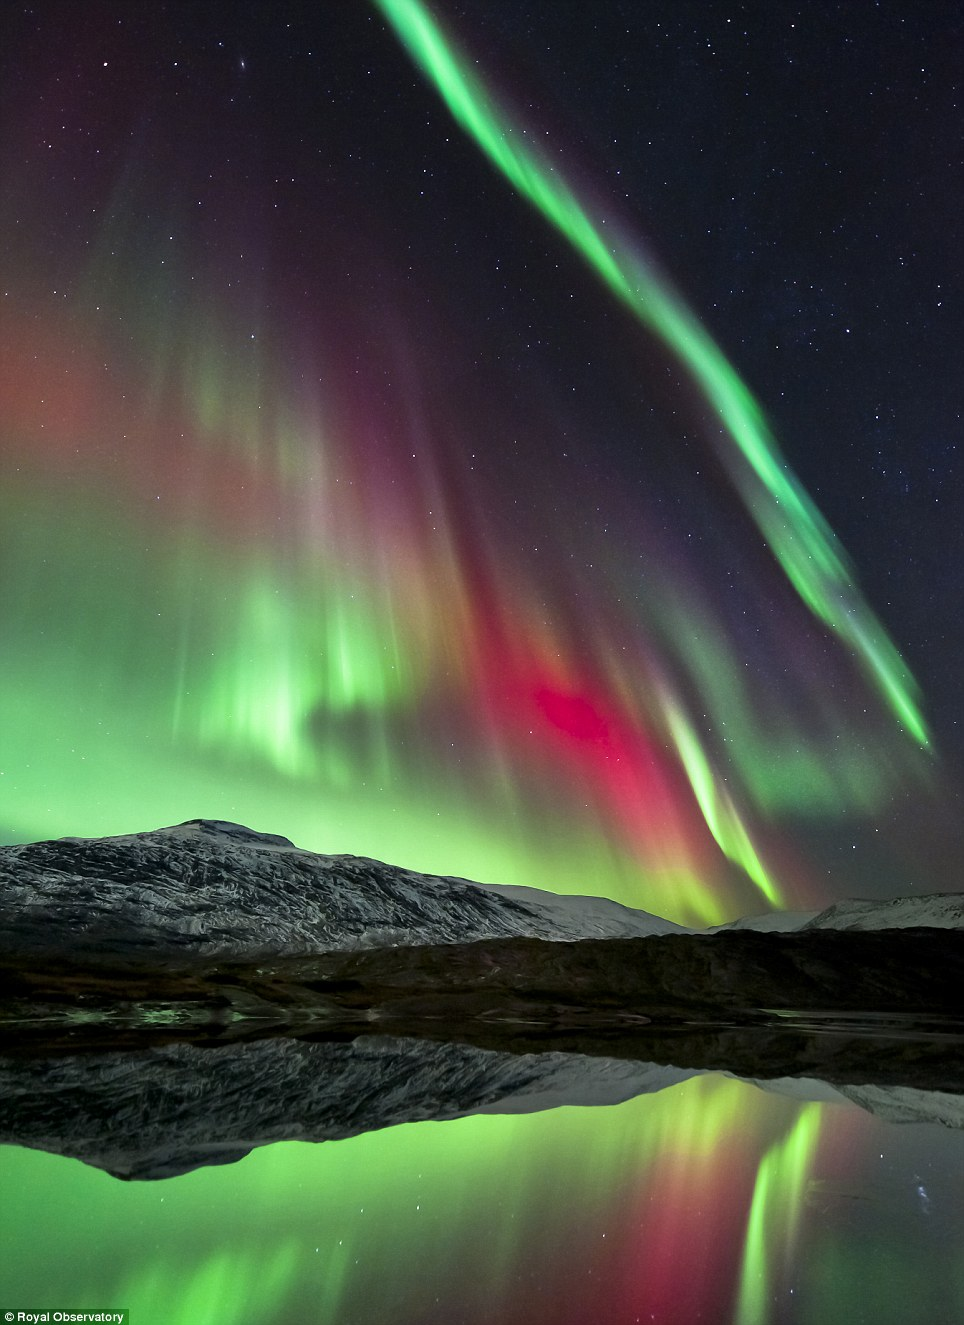 The dazzling Aurora Borealis over Hgtuva Mountain in Norway is captured with its shimmering neon lights